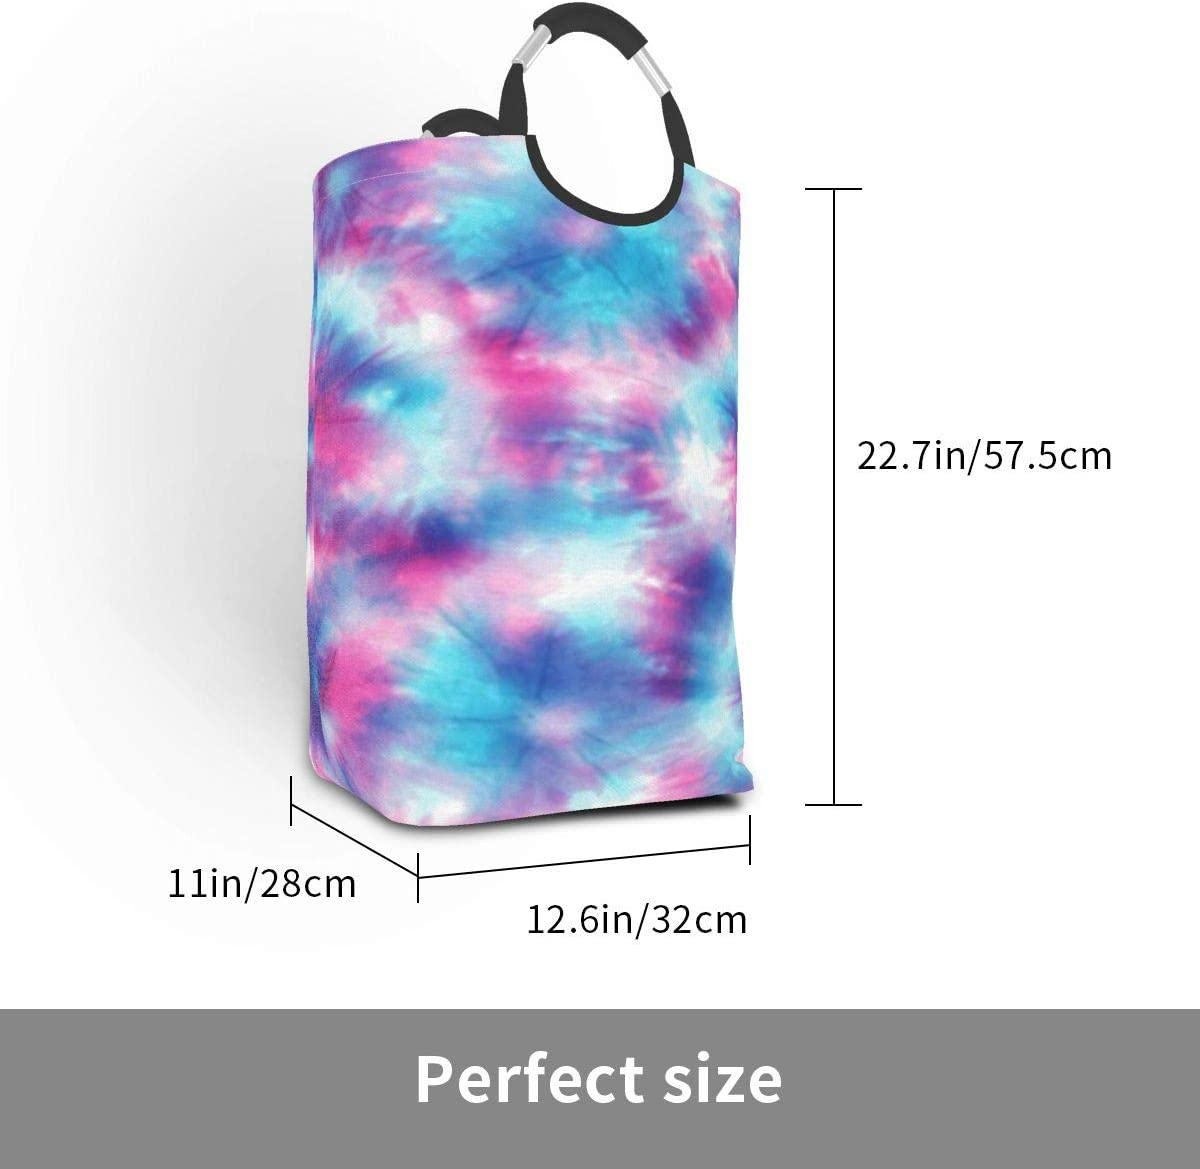 Laundry Hamper Abstract Tie Dye Art Laundry Basket Dirty Clothes Bag Rainbow Scales Magic Stars Foldable Bucket Washing Bin Toys Storage Organizer for College Dorms Kids Bedroom,Bathroom